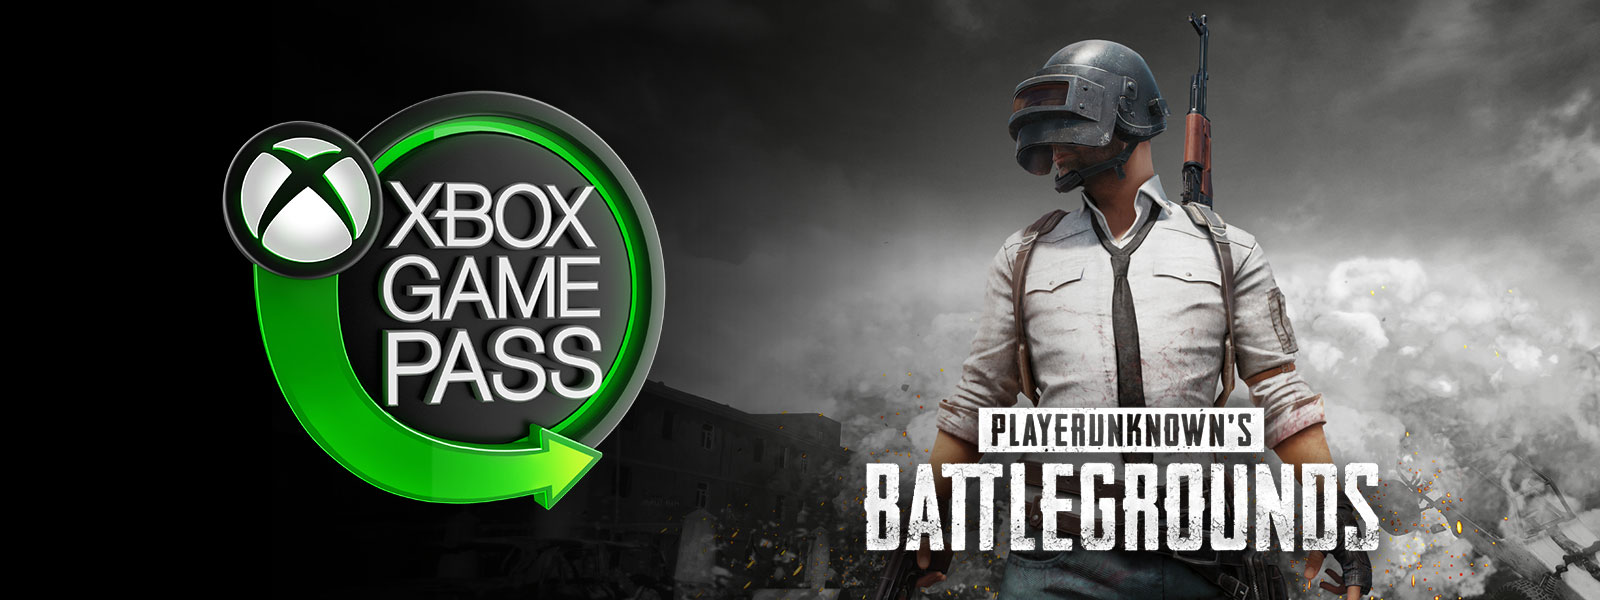 Playerunknowns Battlegrounds For Xbox One Xbox